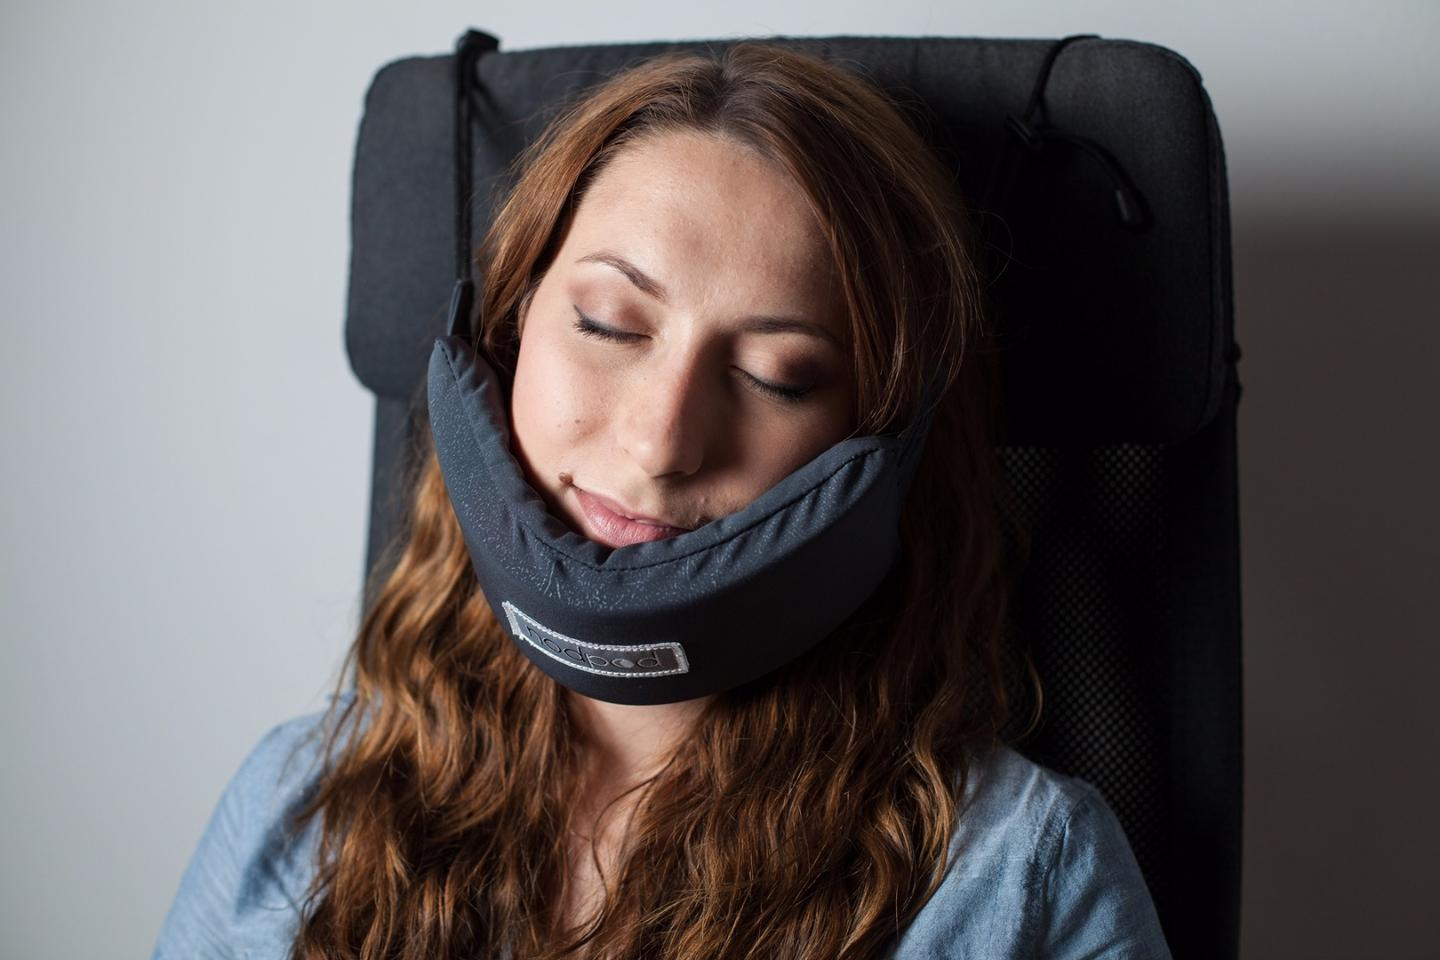 The NodPodcomprises cords that slip over therear of aseat orheadrest to secure a support upon which the user rests her chin